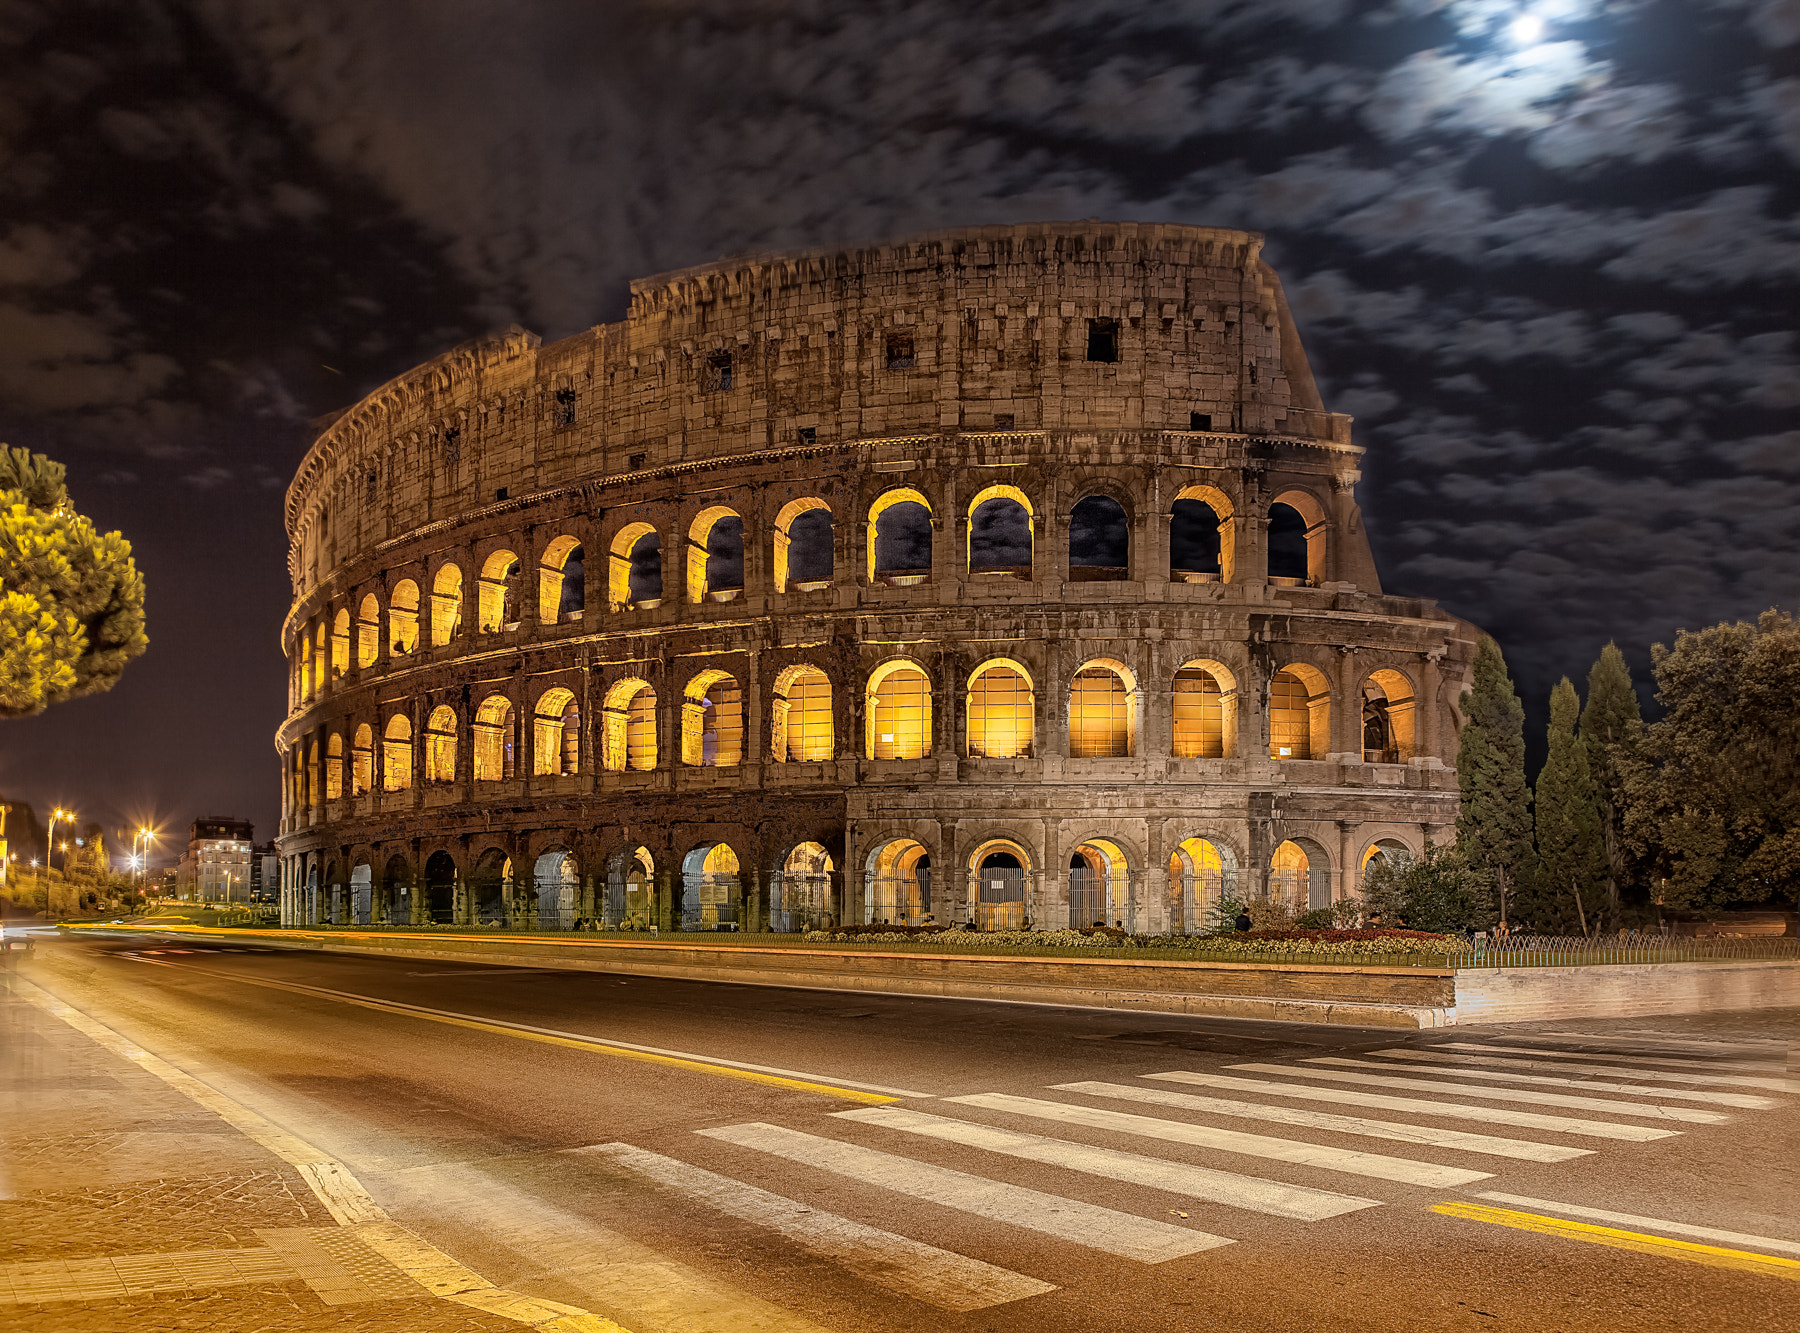 Photograph Colosseum by Yevgeniy Rozhkov on 500px